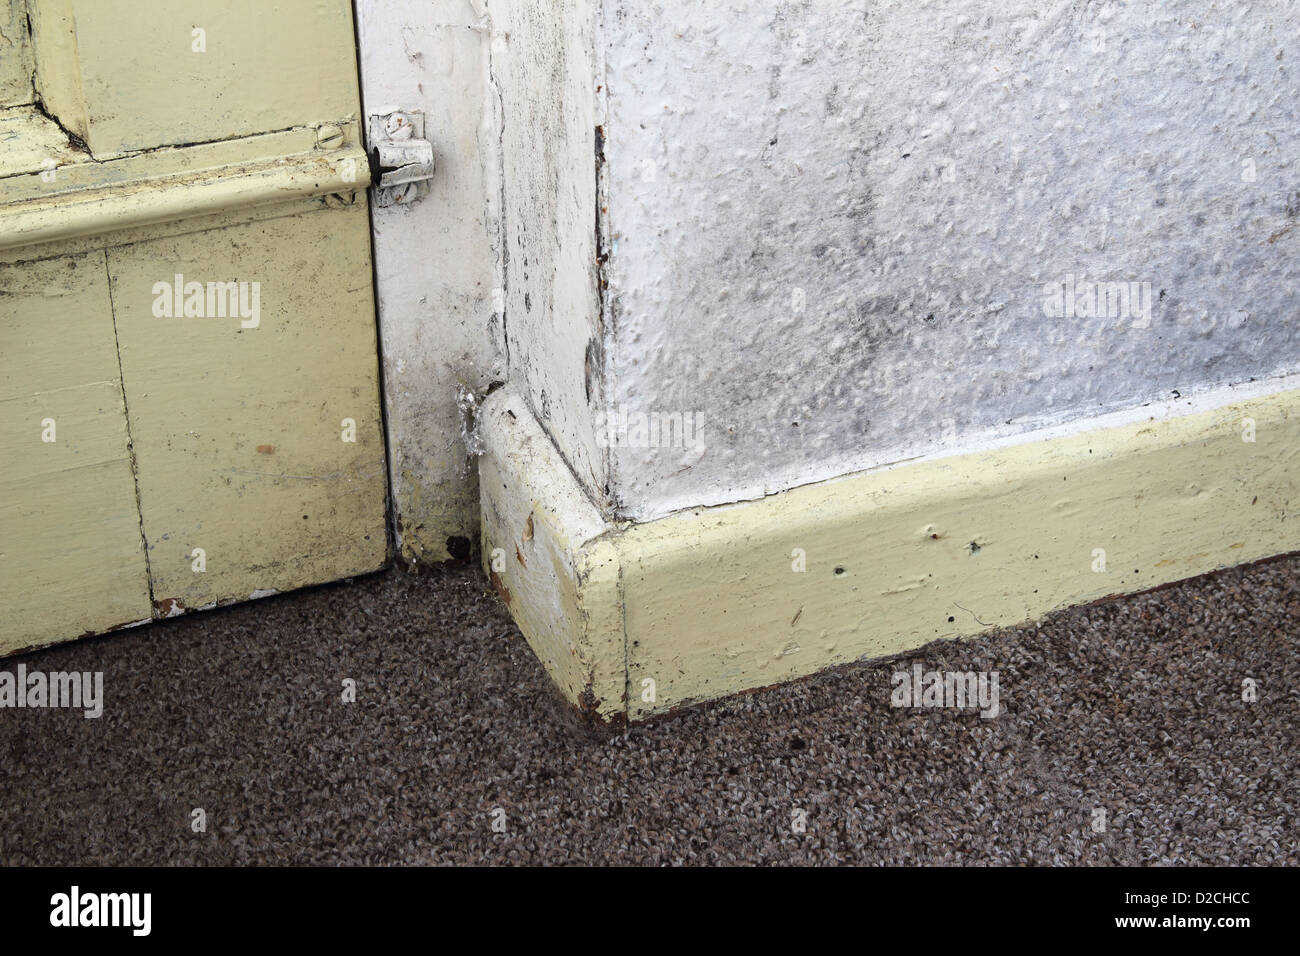 Internal Wall with Wallpaper Covering Showing Signs of Mould and Dampness, UK PROPERTY RELEASED - Stock Image